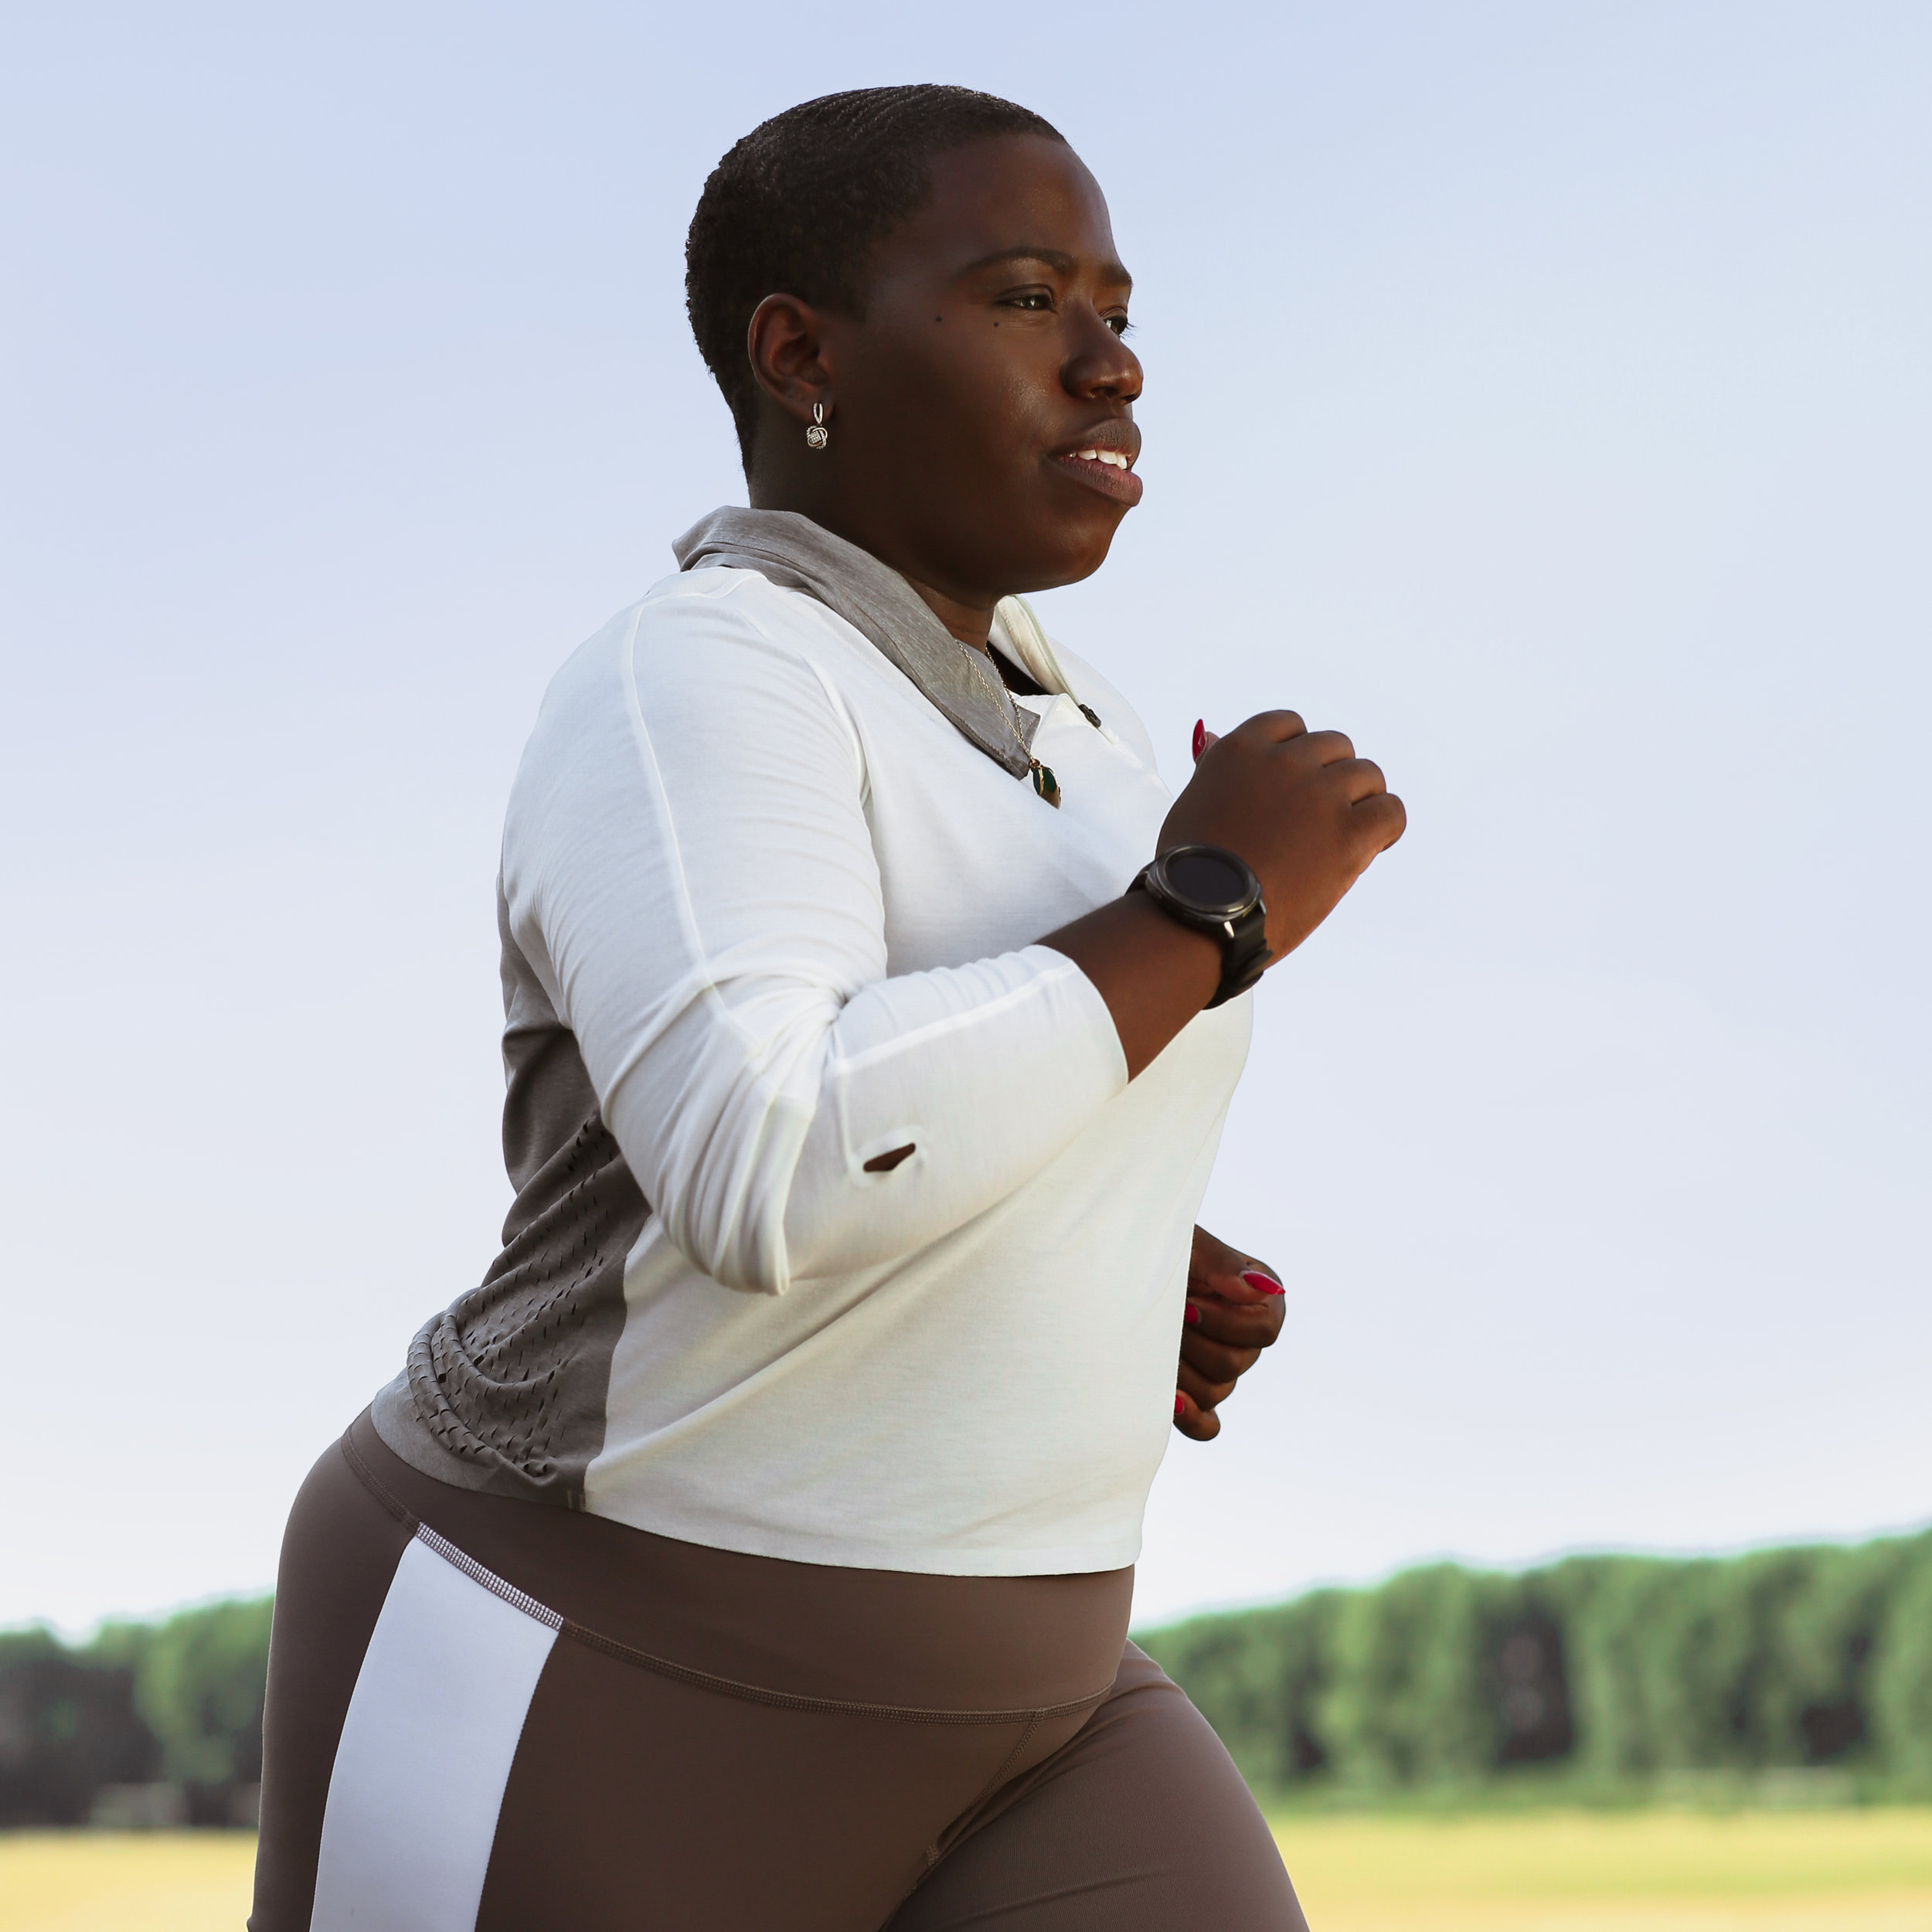 Copy of Wearables_Go_Beyond_Fitness_1x1-C2-Frame3.jpg